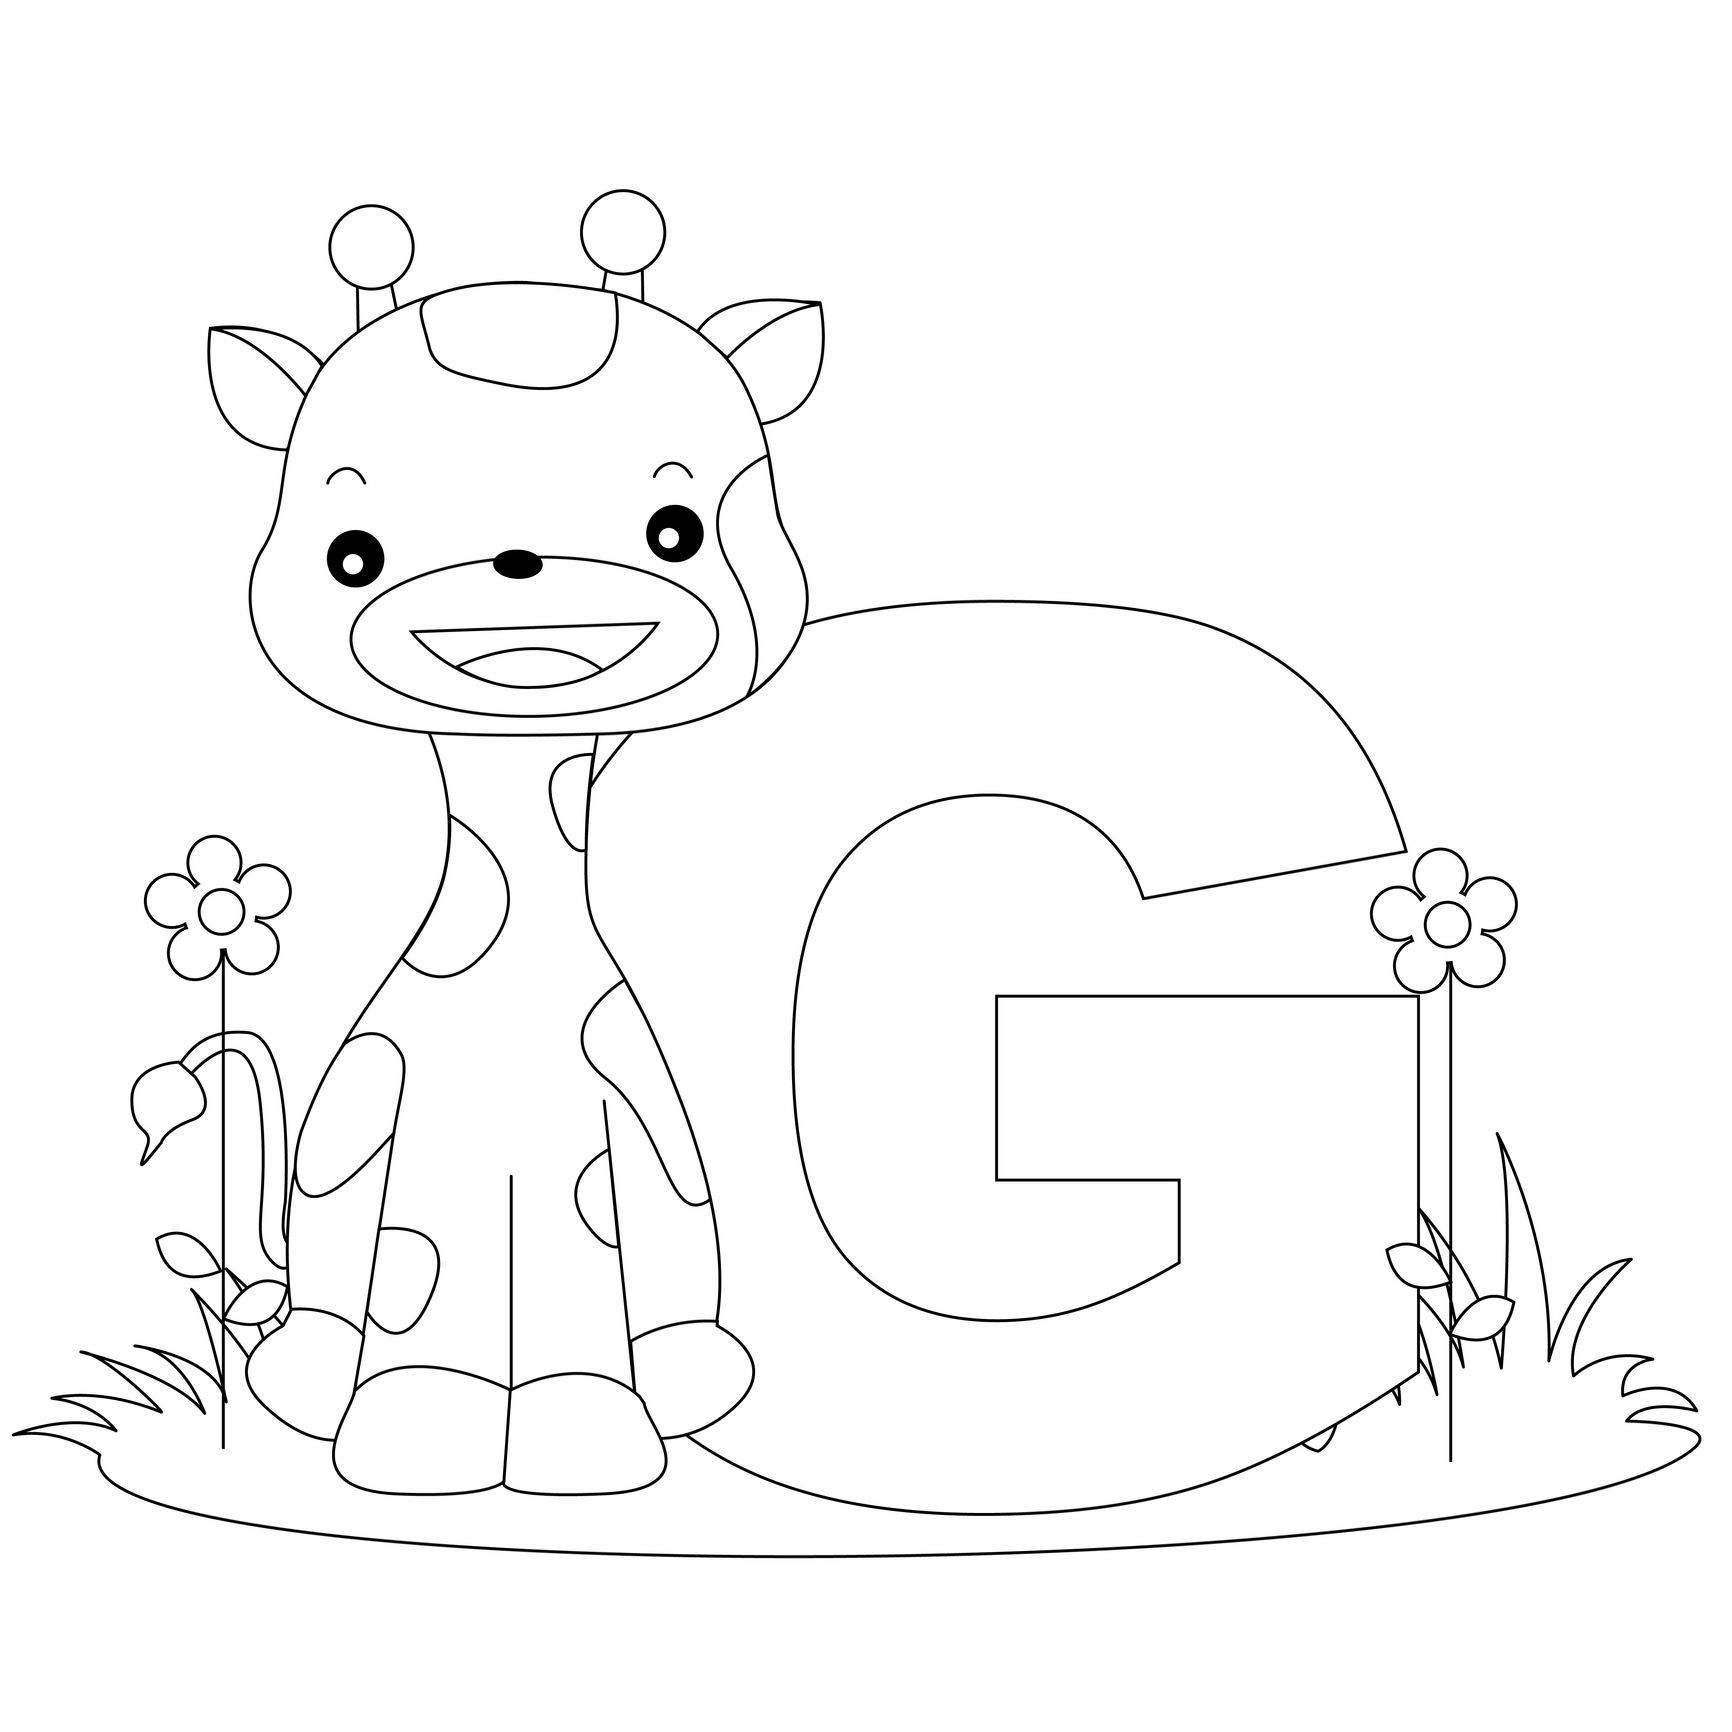 Alphabet Letters Coloring Pages Printable At Getdrawings Com Free